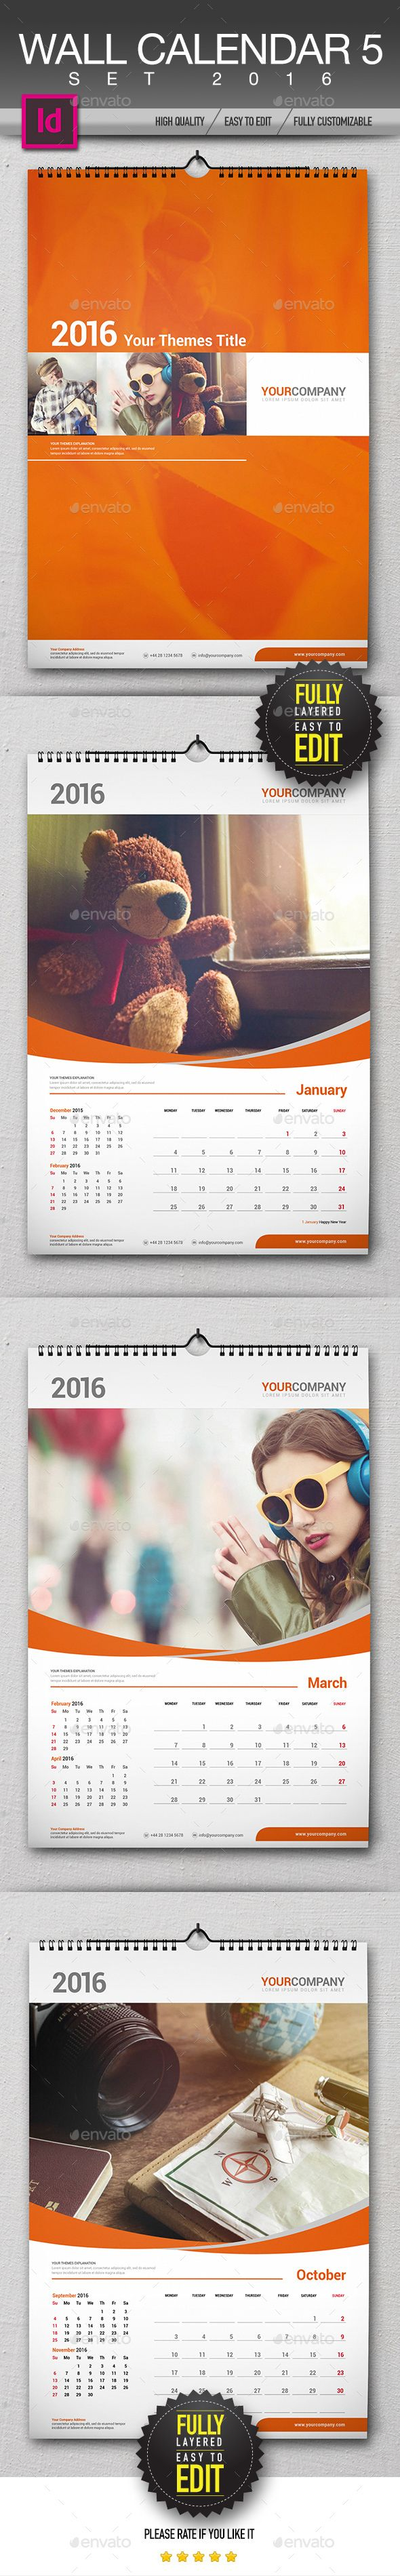 Wall Calendar 2016 Set Template InDesign INDD #design Download: http://graphicriver.net/item/wall-calendar-2016-set/13495864?ref=ksioks